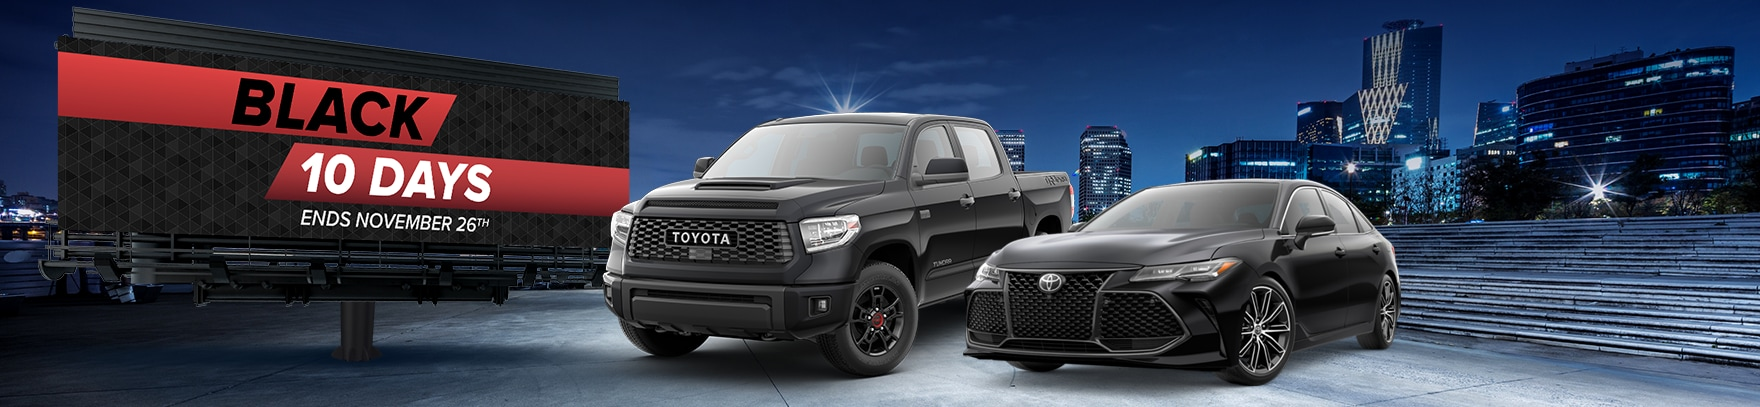 Toyota Black 10 Day Sales Event